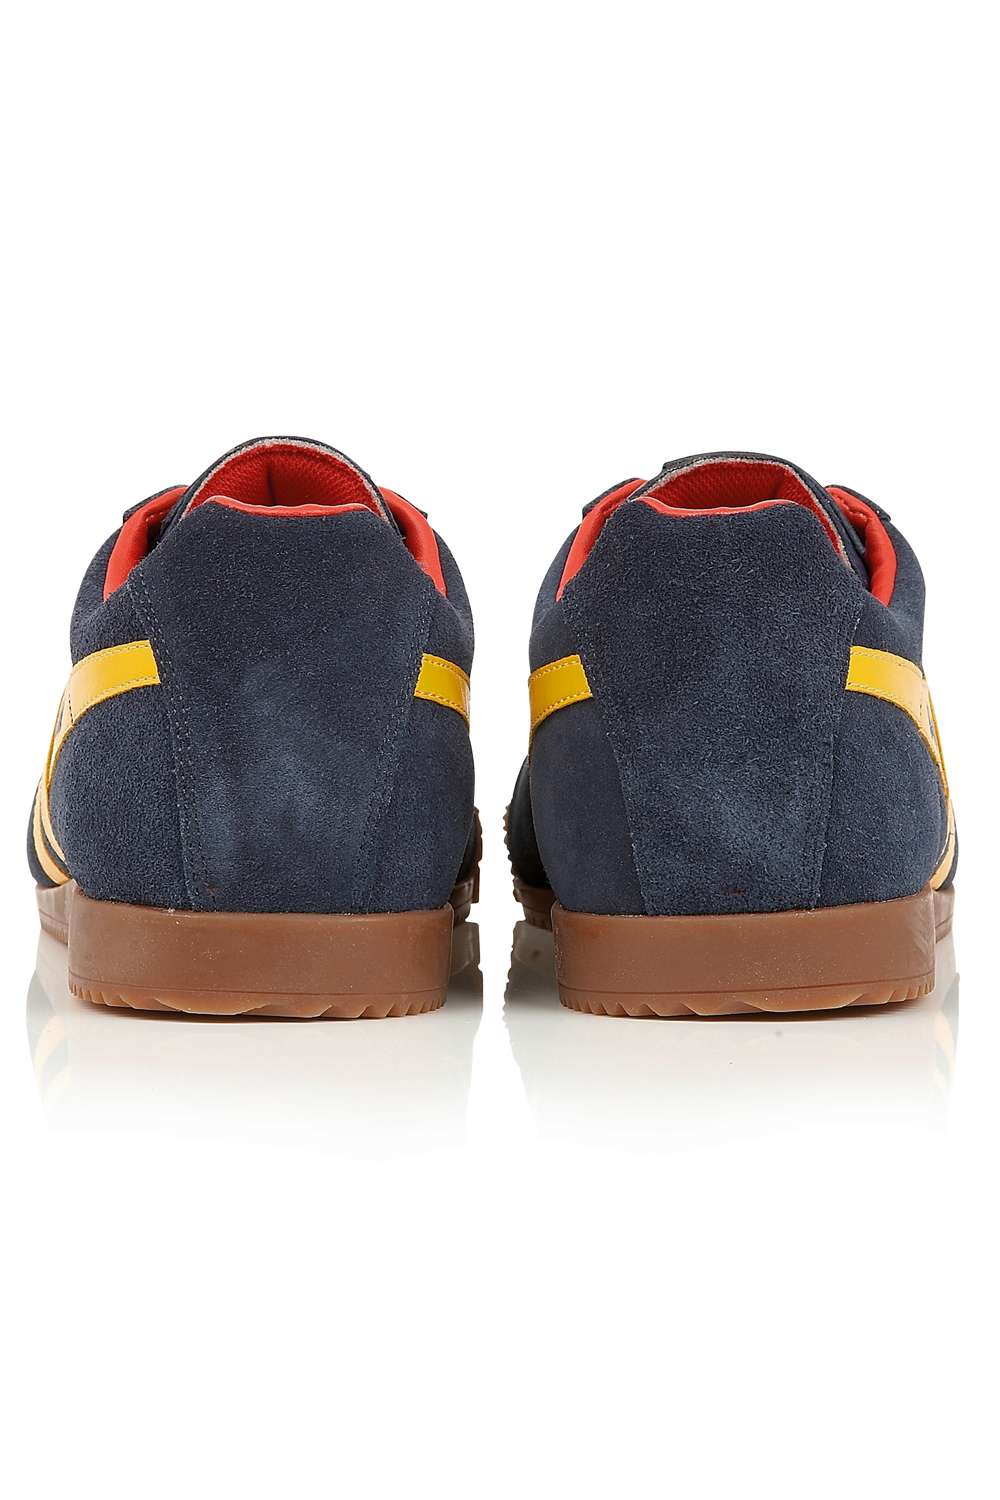 Gola-Harrier-Suede-Classic-Vintage-Lace-Up-Sneakers-Mens-Trainers-Low-Top-Shoes thumbnail 14